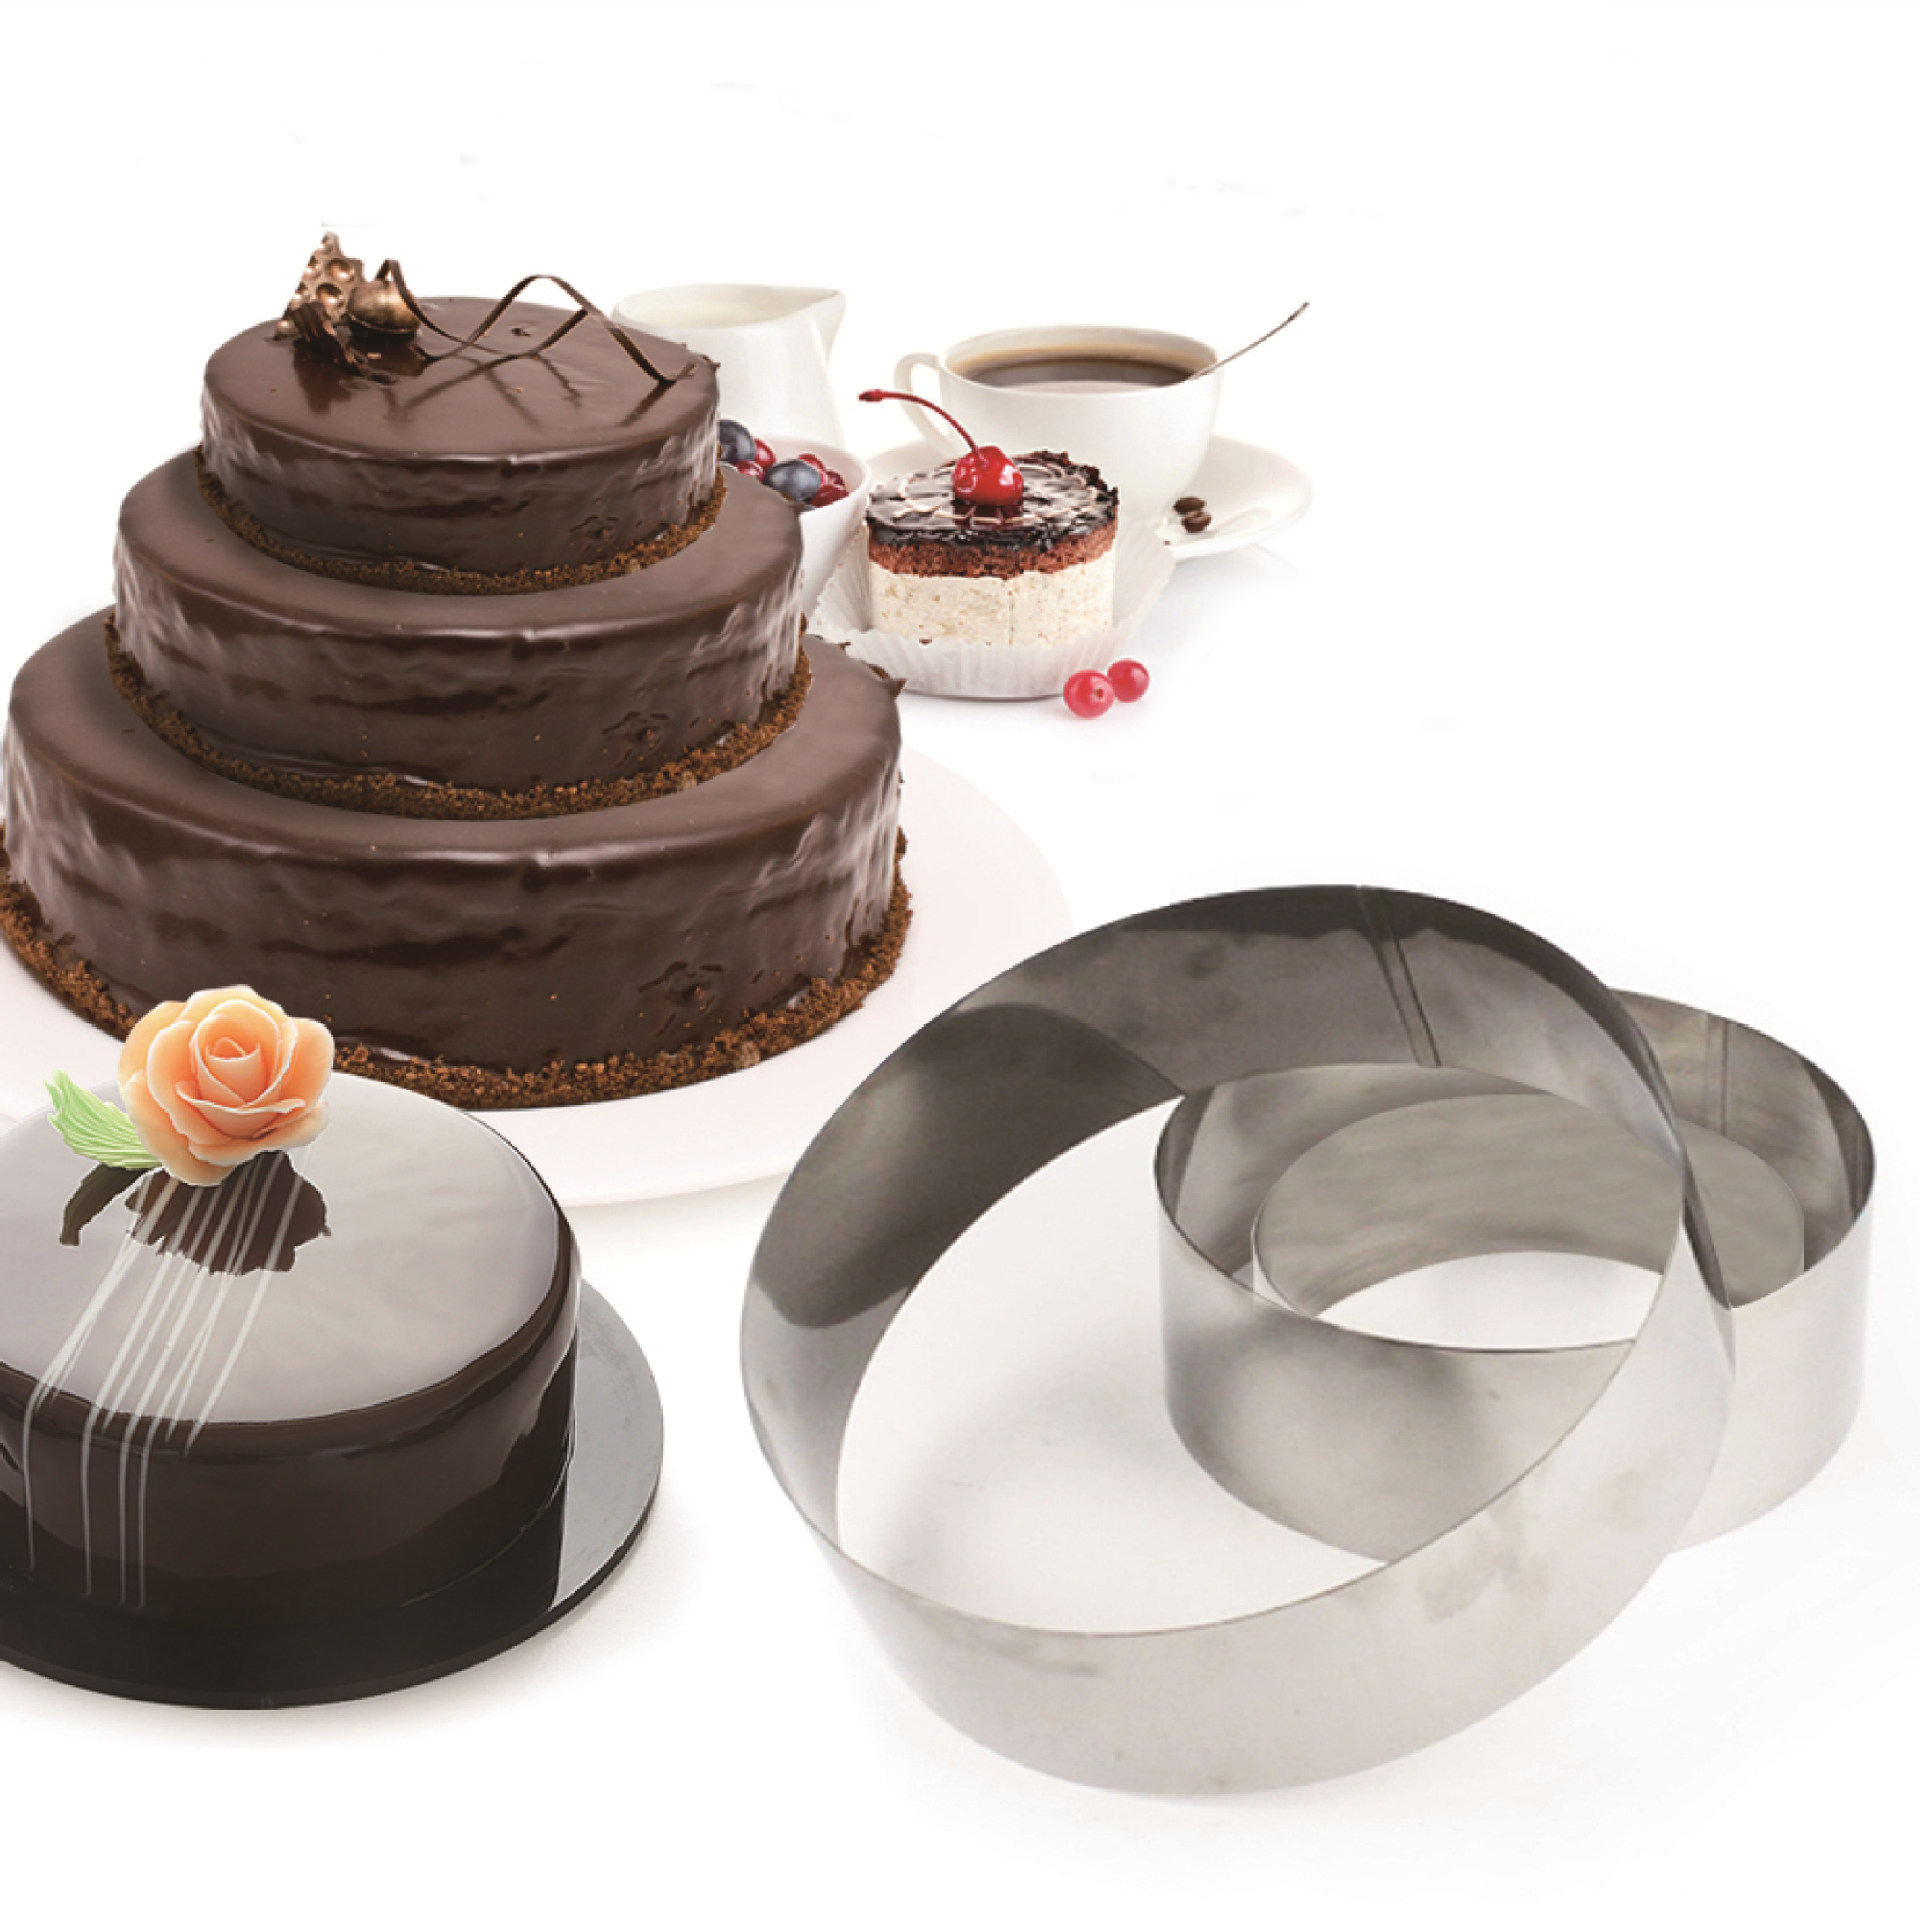 Zogifts Multi-Shapes Baking Tool Mousse Cake Mold Perforated Tart Ring